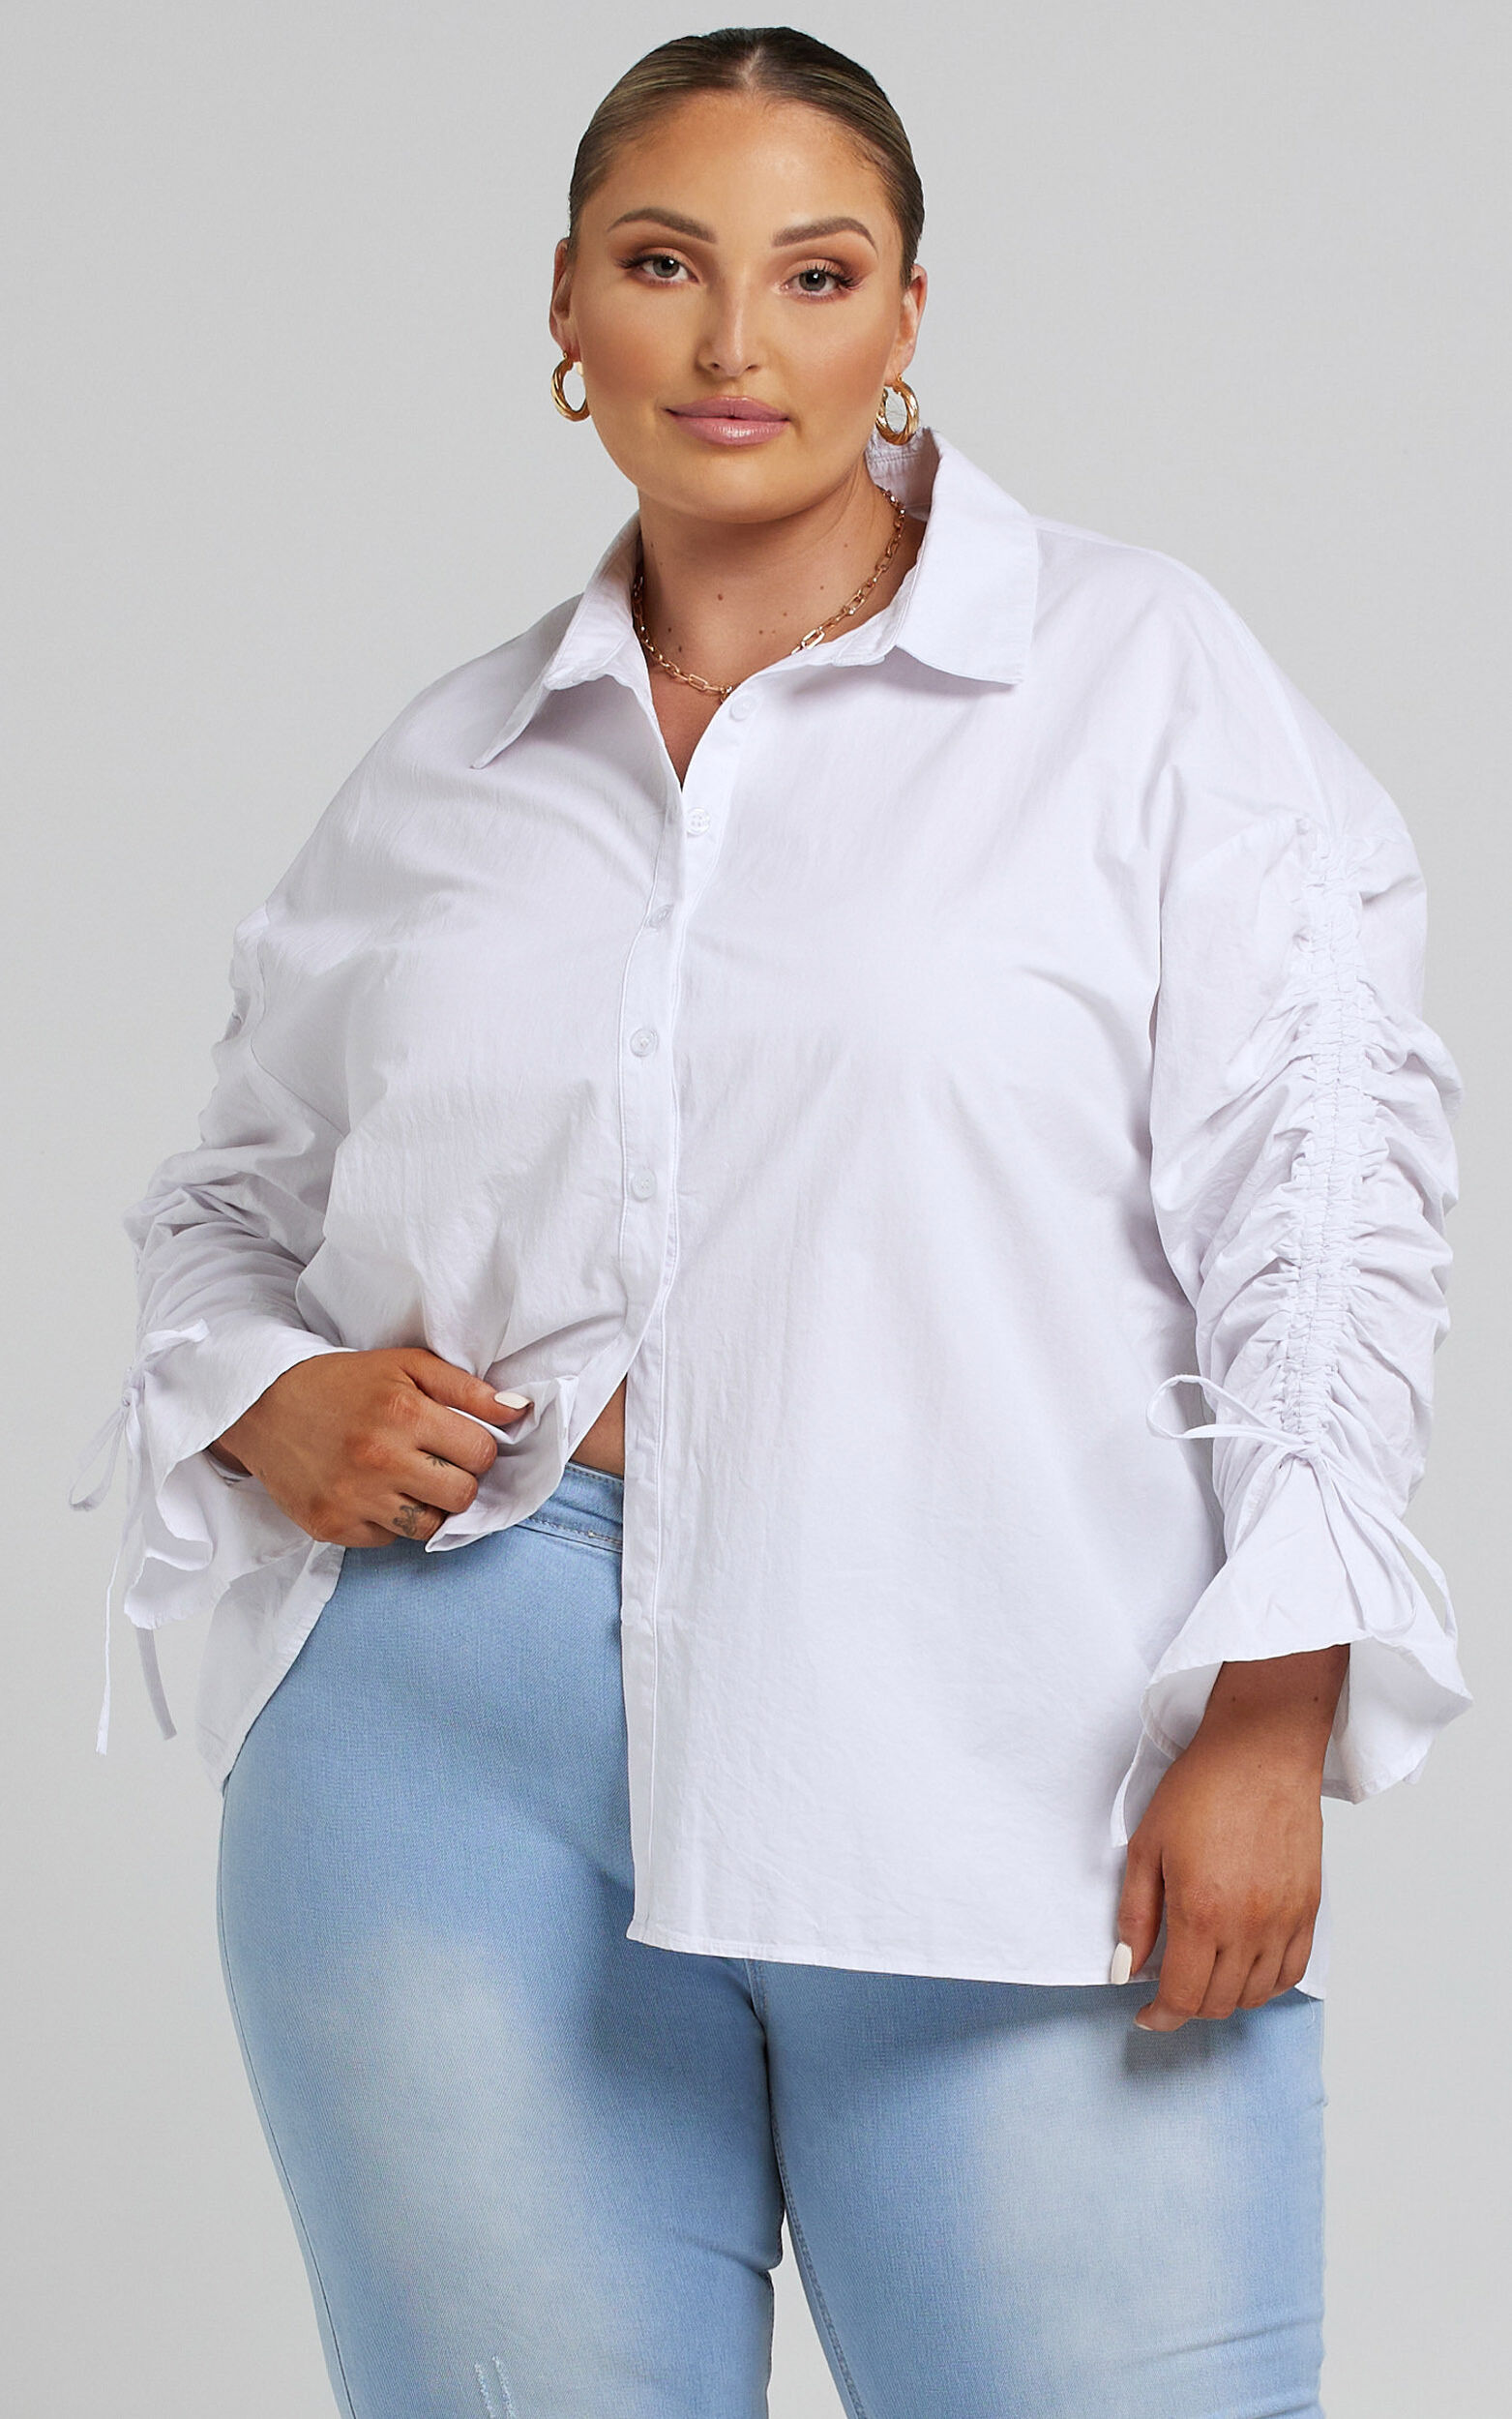 Melli Longsleeve Ruched Shirt in White - 04, WHT2, super-hi-res image number null